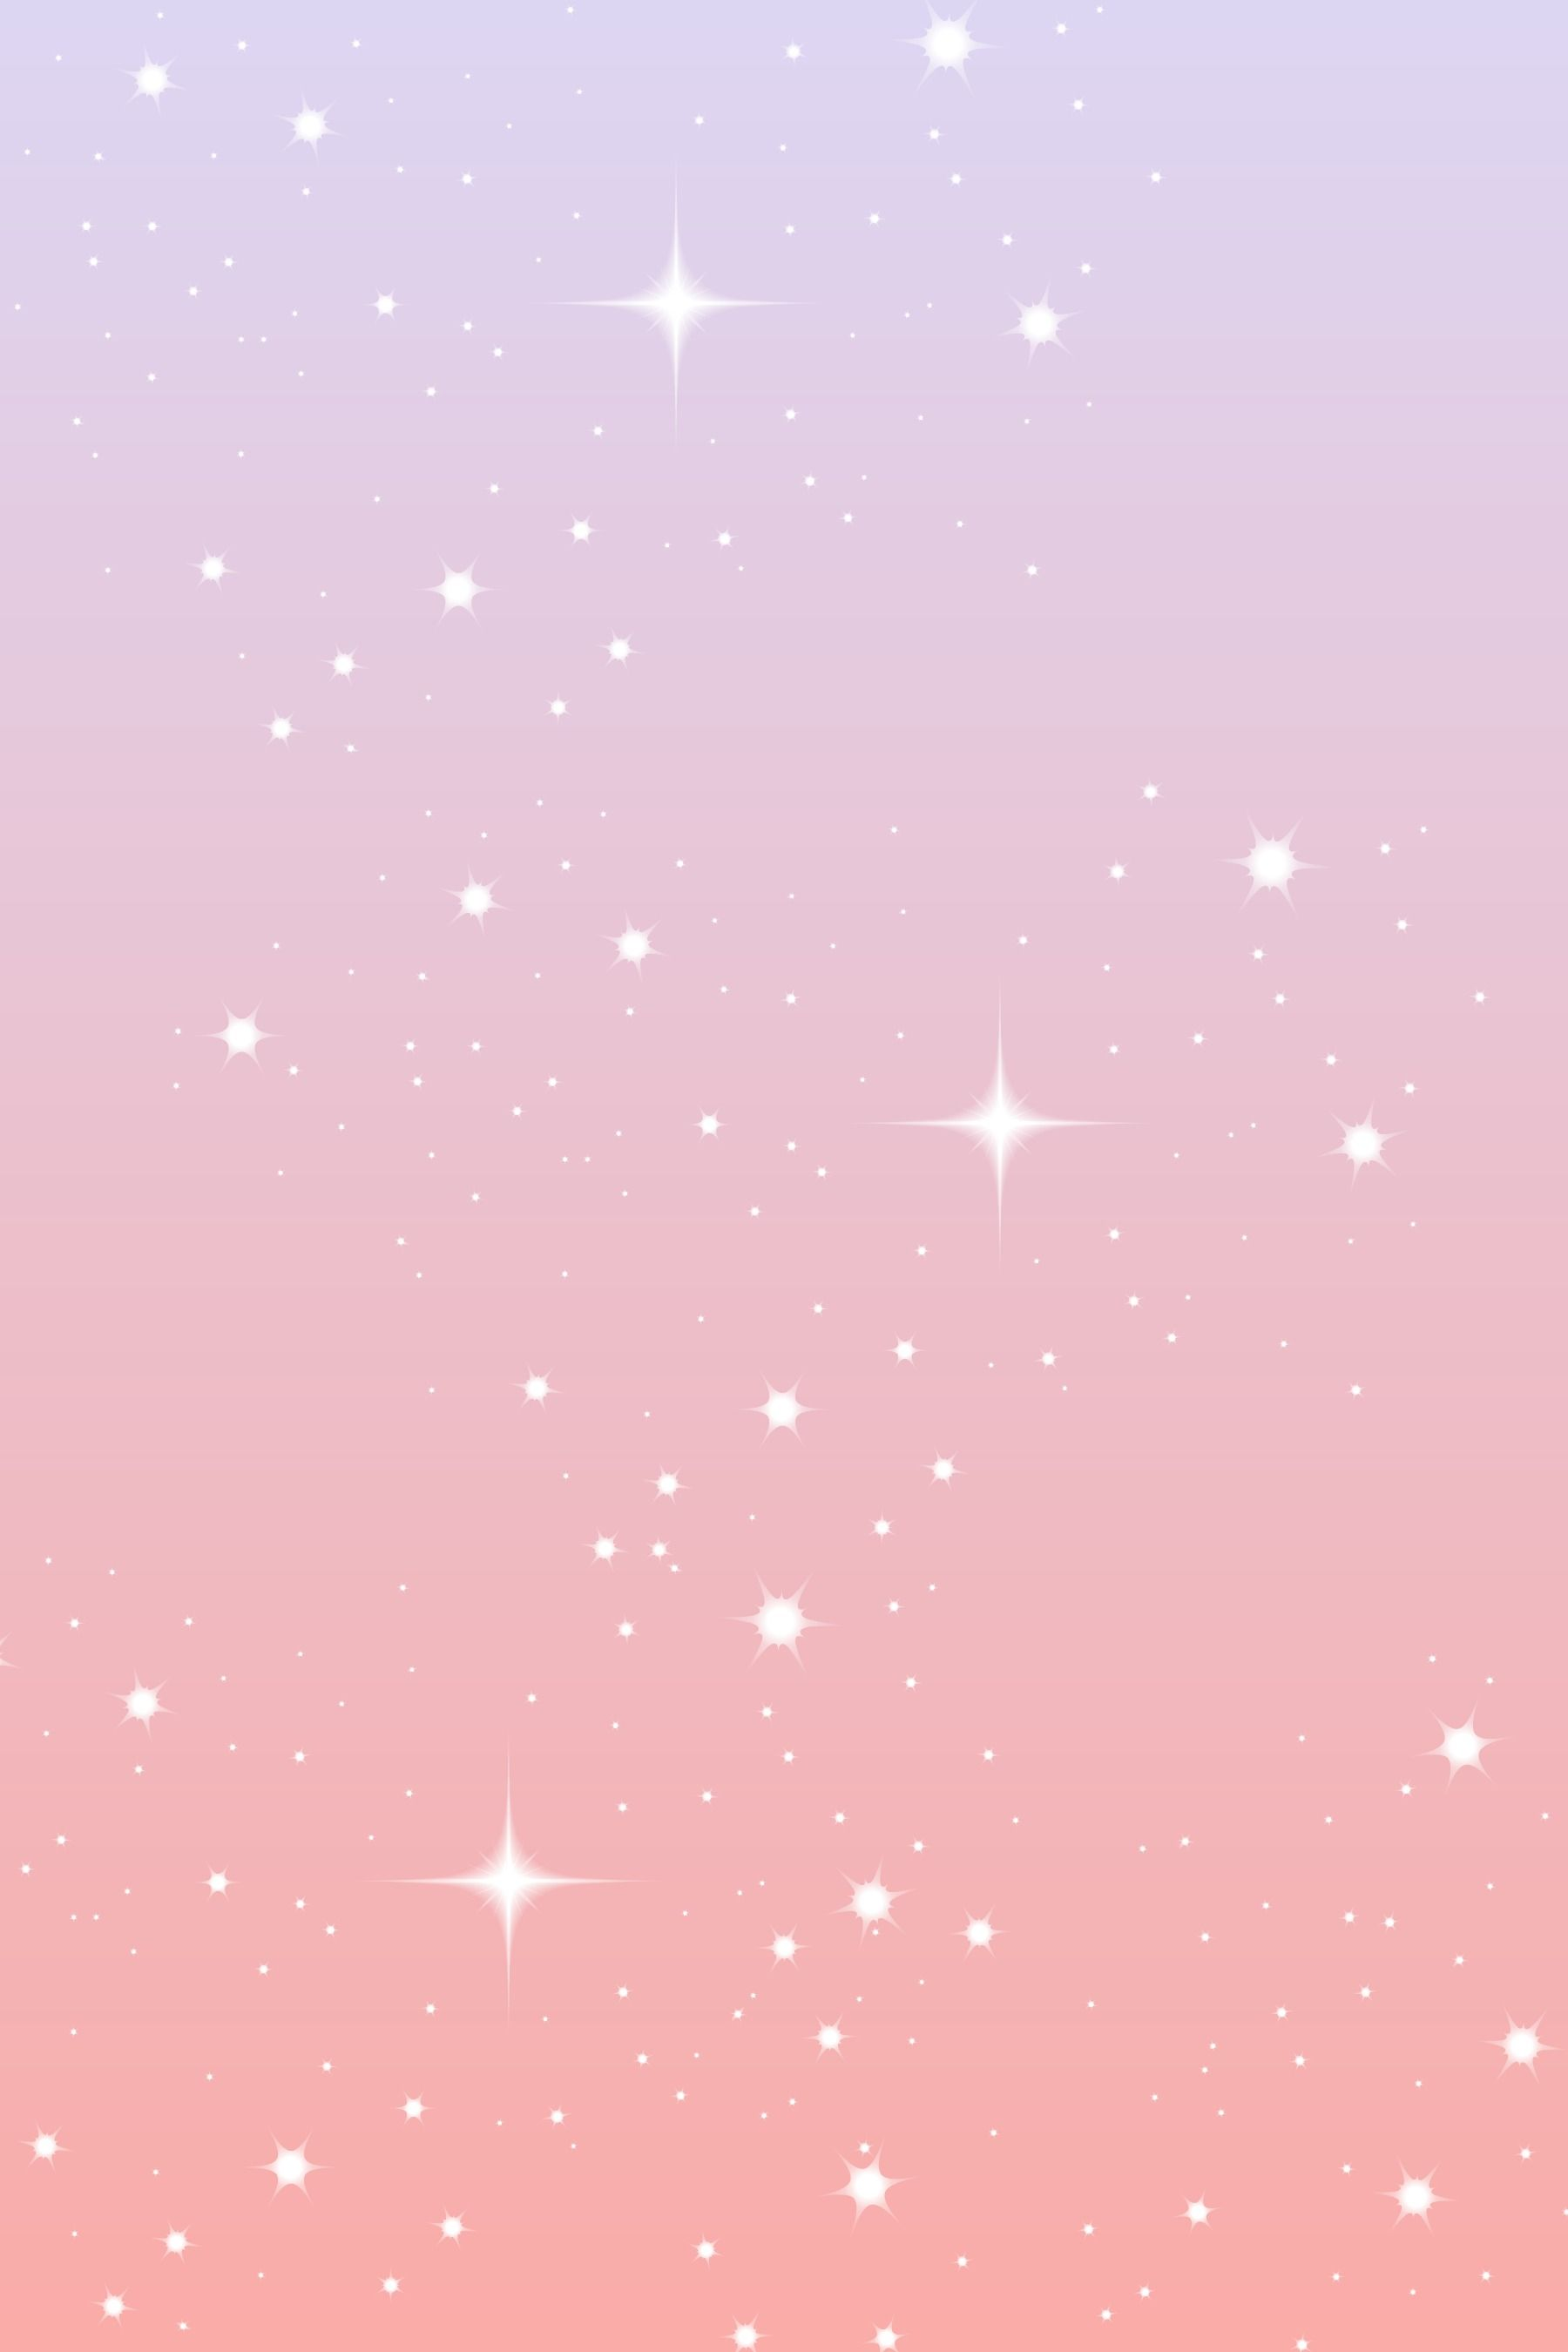 Purple Ombre Background Tumblr: Phone Wallpaper With Purple And Pink Ombre And With